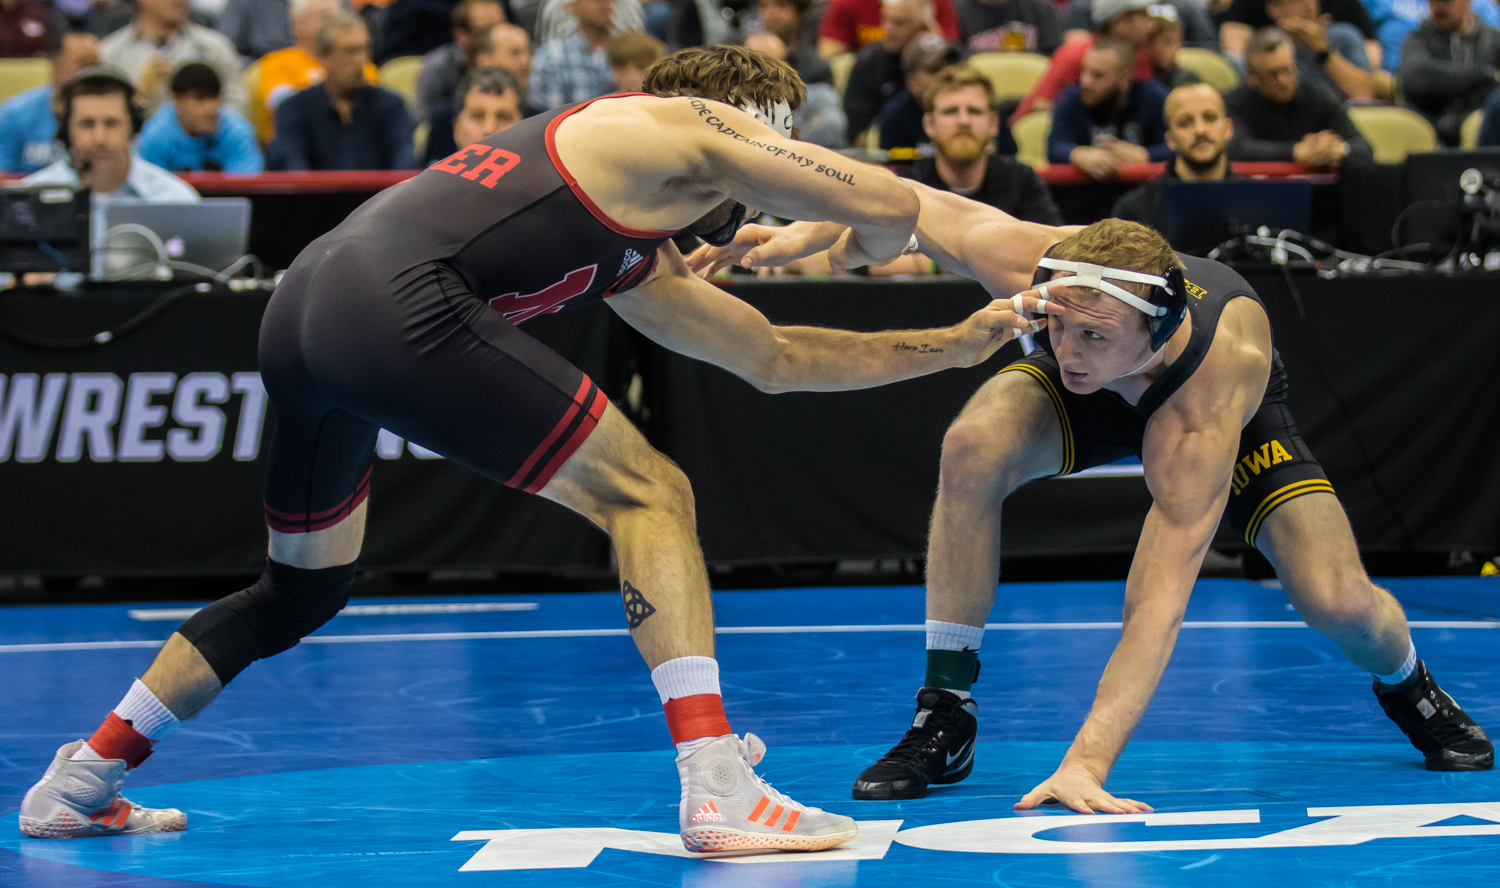 Iowa%E2%80%99s+157-pound+Kaleb+Young+wrestles+Nebraska%E2%80%99s+Tyler+Berger+during+the+fourth+session+of+the+2019+NCAA+D1+Wrestling+Championships+at+PPG+Paints+Arena+in+Pittsburgh%2C+PA+on+Friday%2C+March+22%2C+2019.+Berger+won+by+decision%2C+5-3.